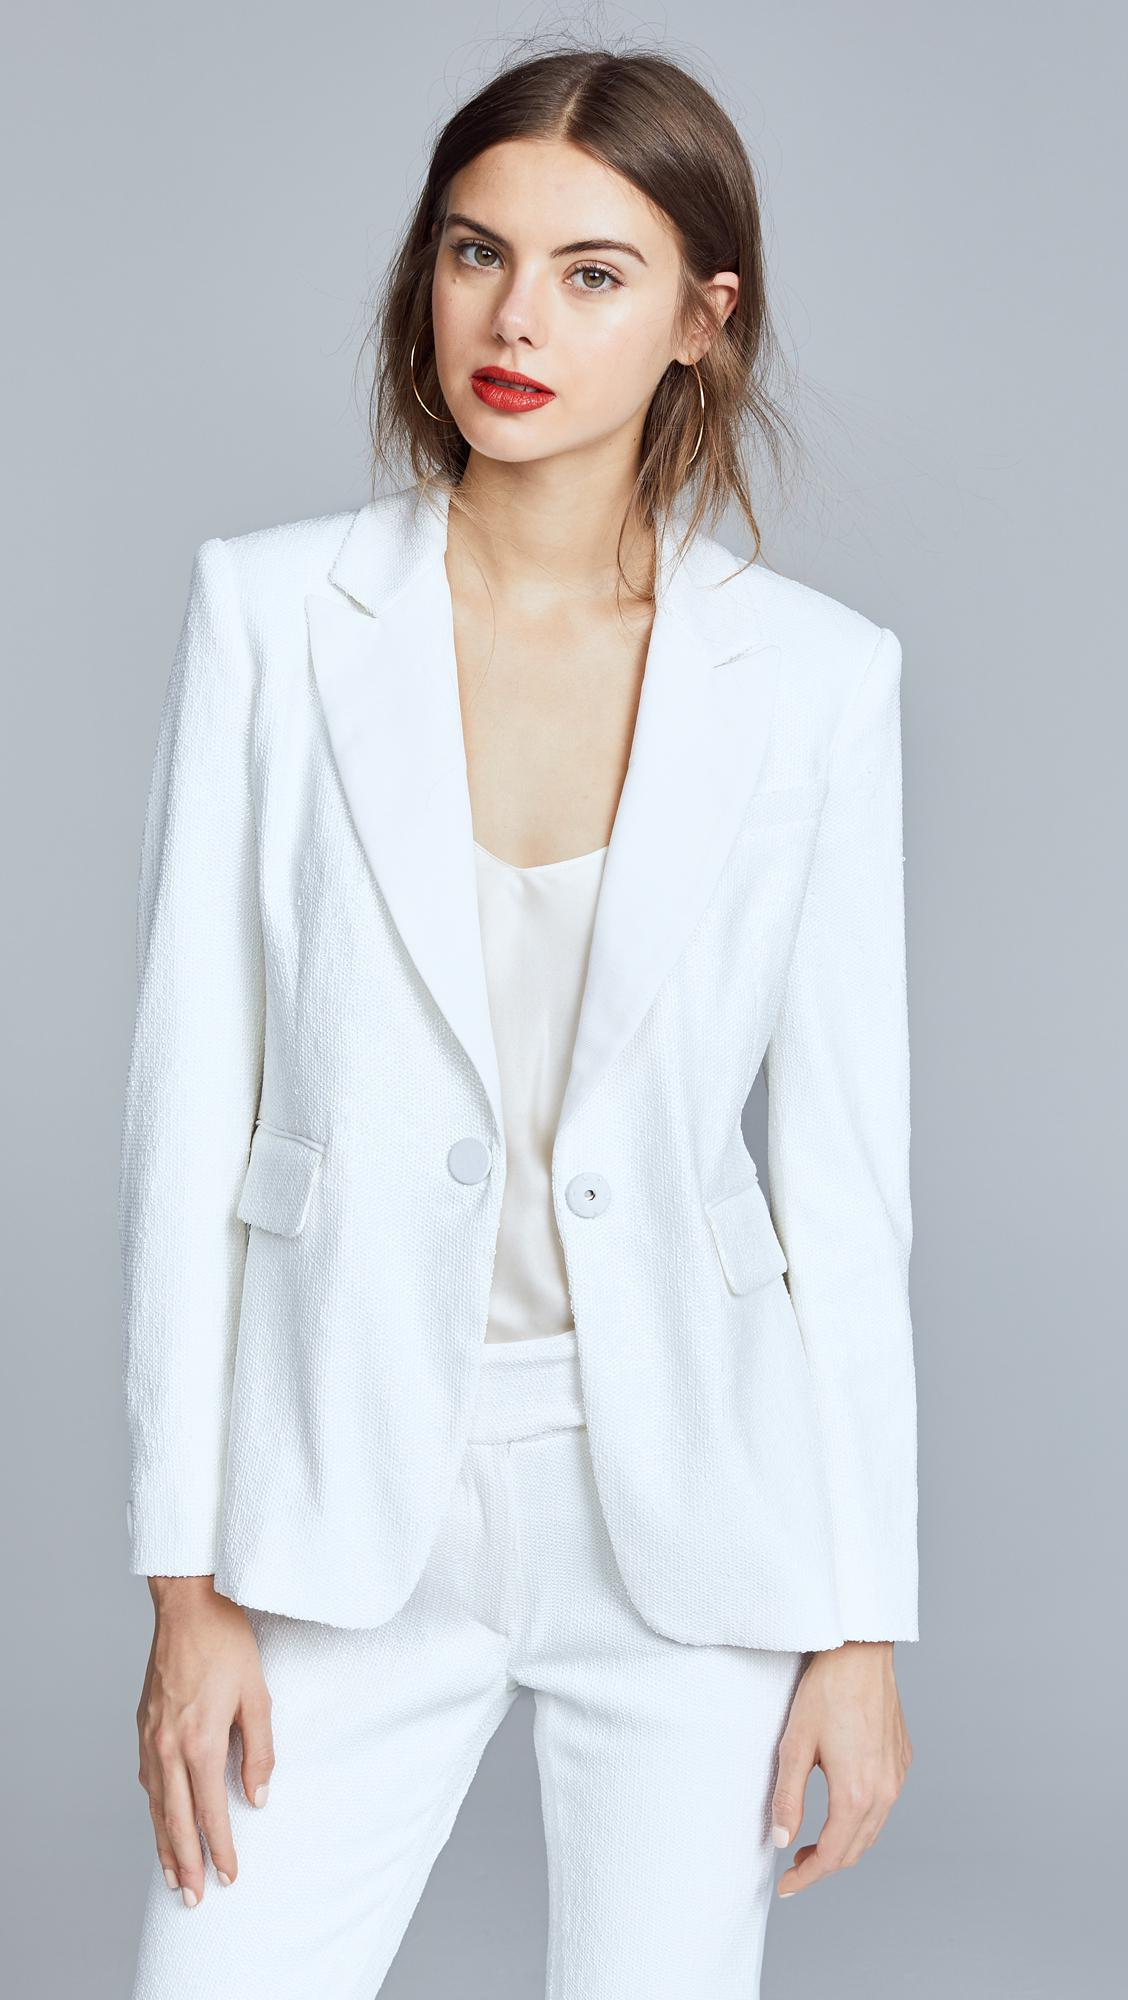 Rachel Zoe Structured Knit Blazer Discount For Sale Visit Shop Offer Cheap Price pGPl7pHDJ